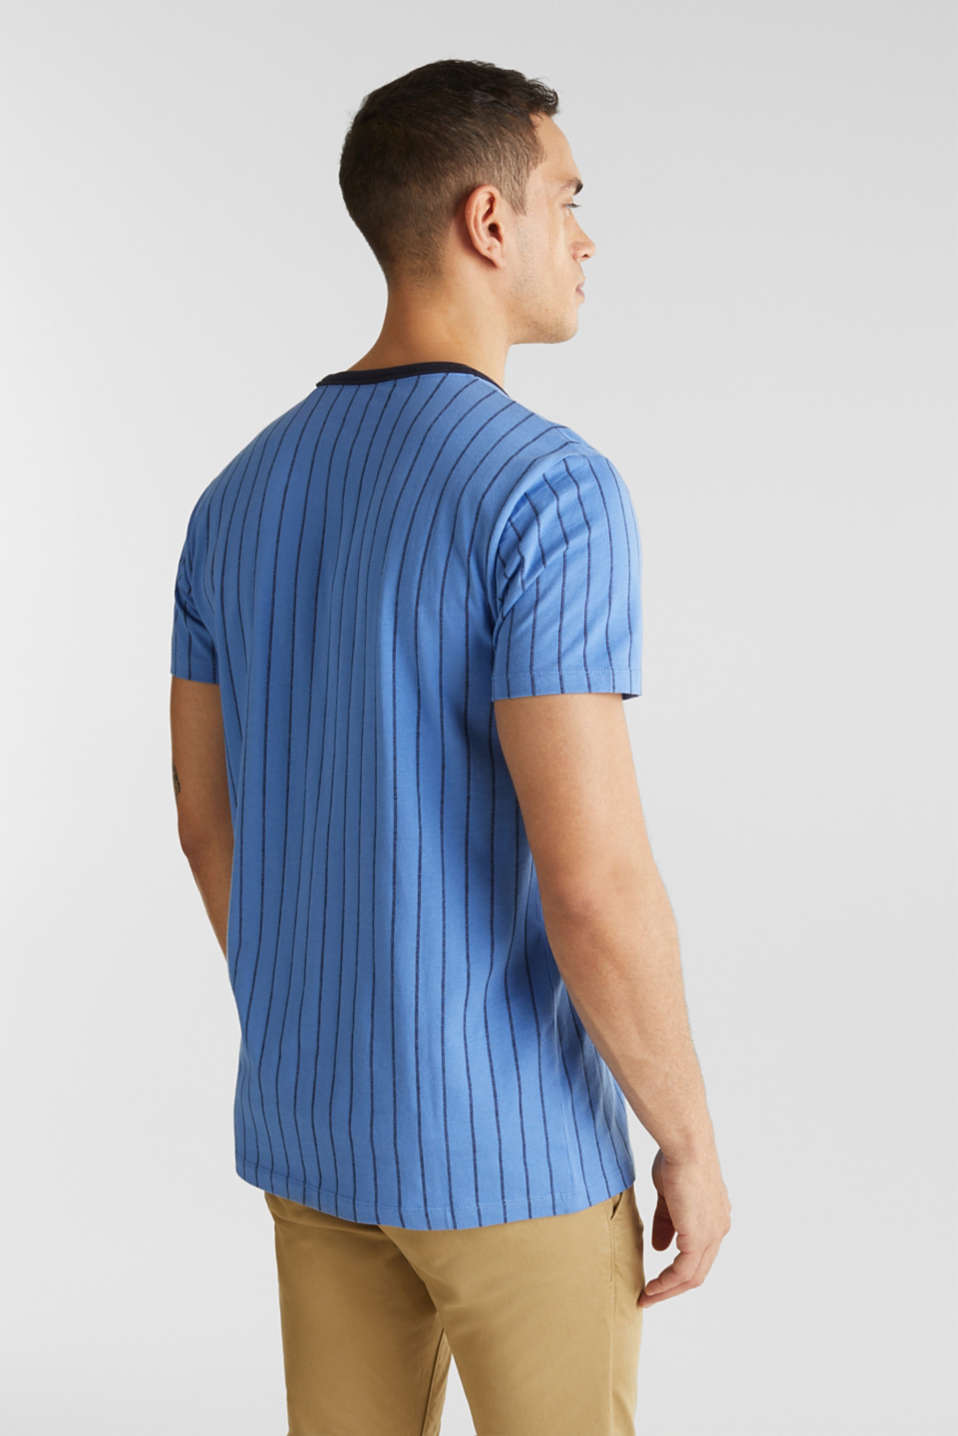 Jersey T-shirt with stripes, 100% cotton, LIGHT BLUE 3, detail image number 2